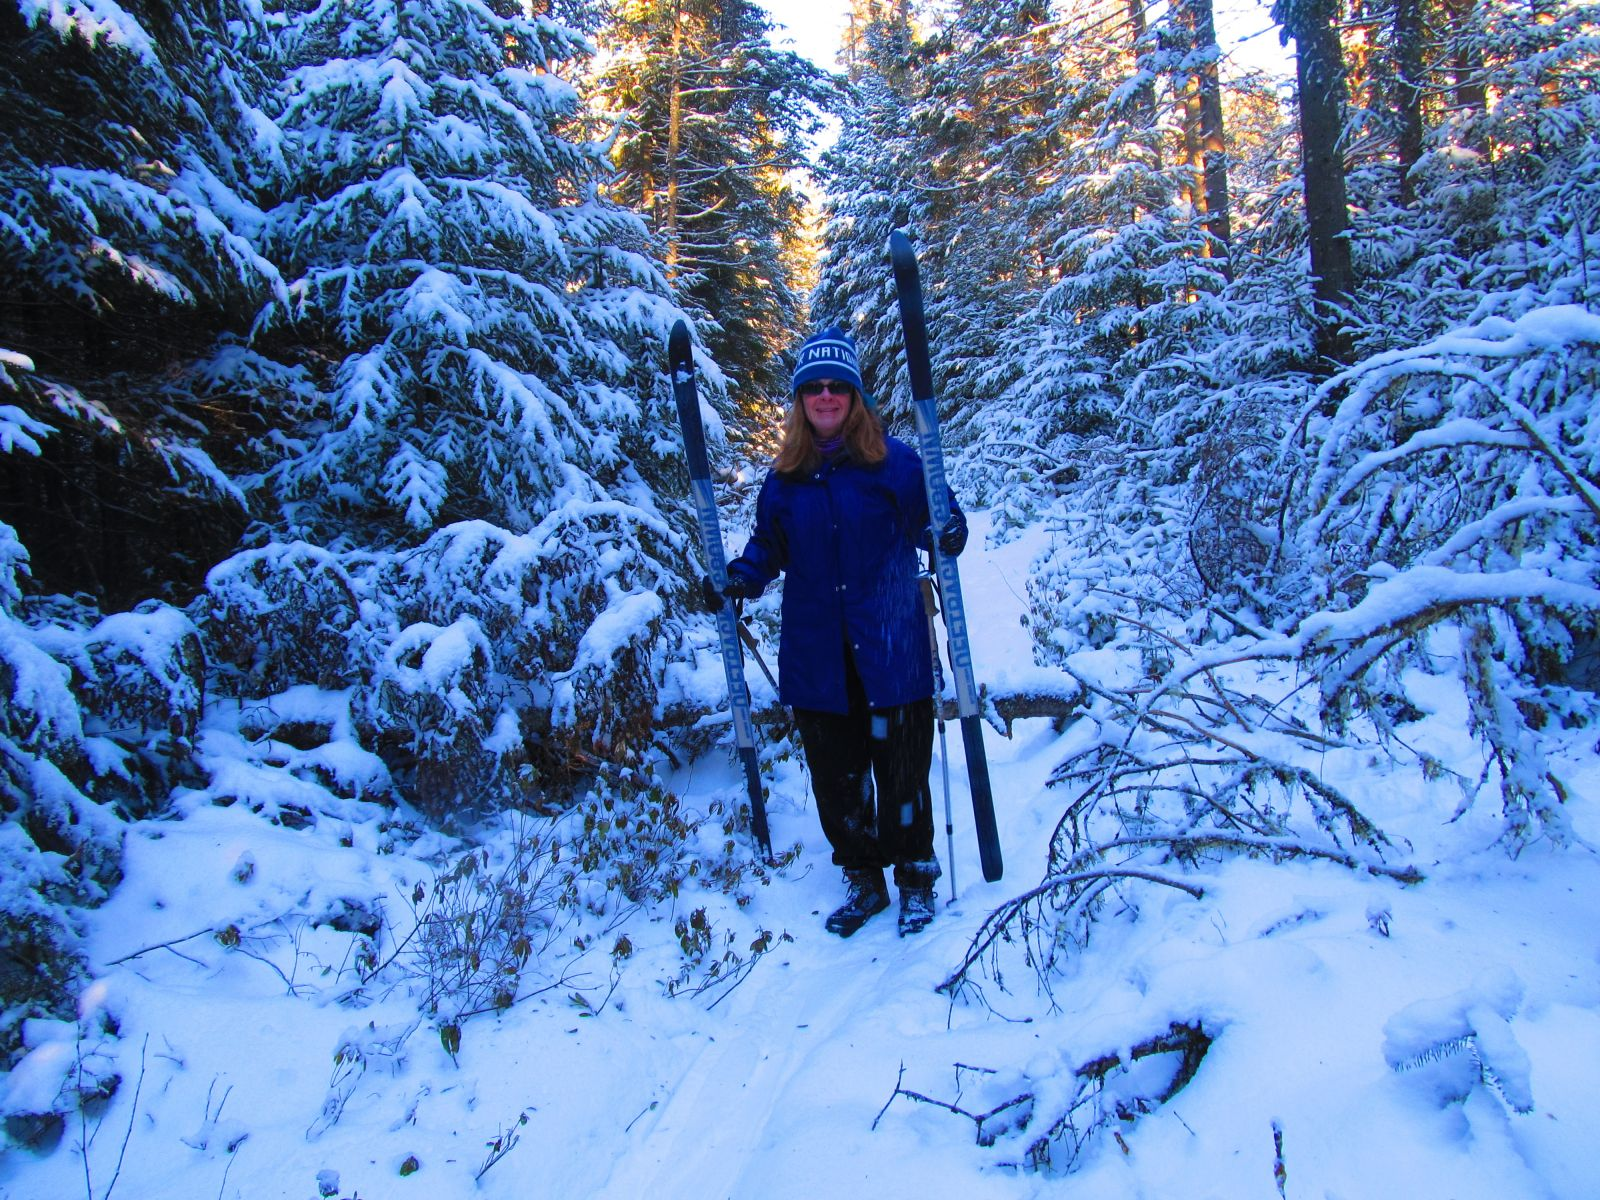 Trisa Minton removes her skis for a downed tree